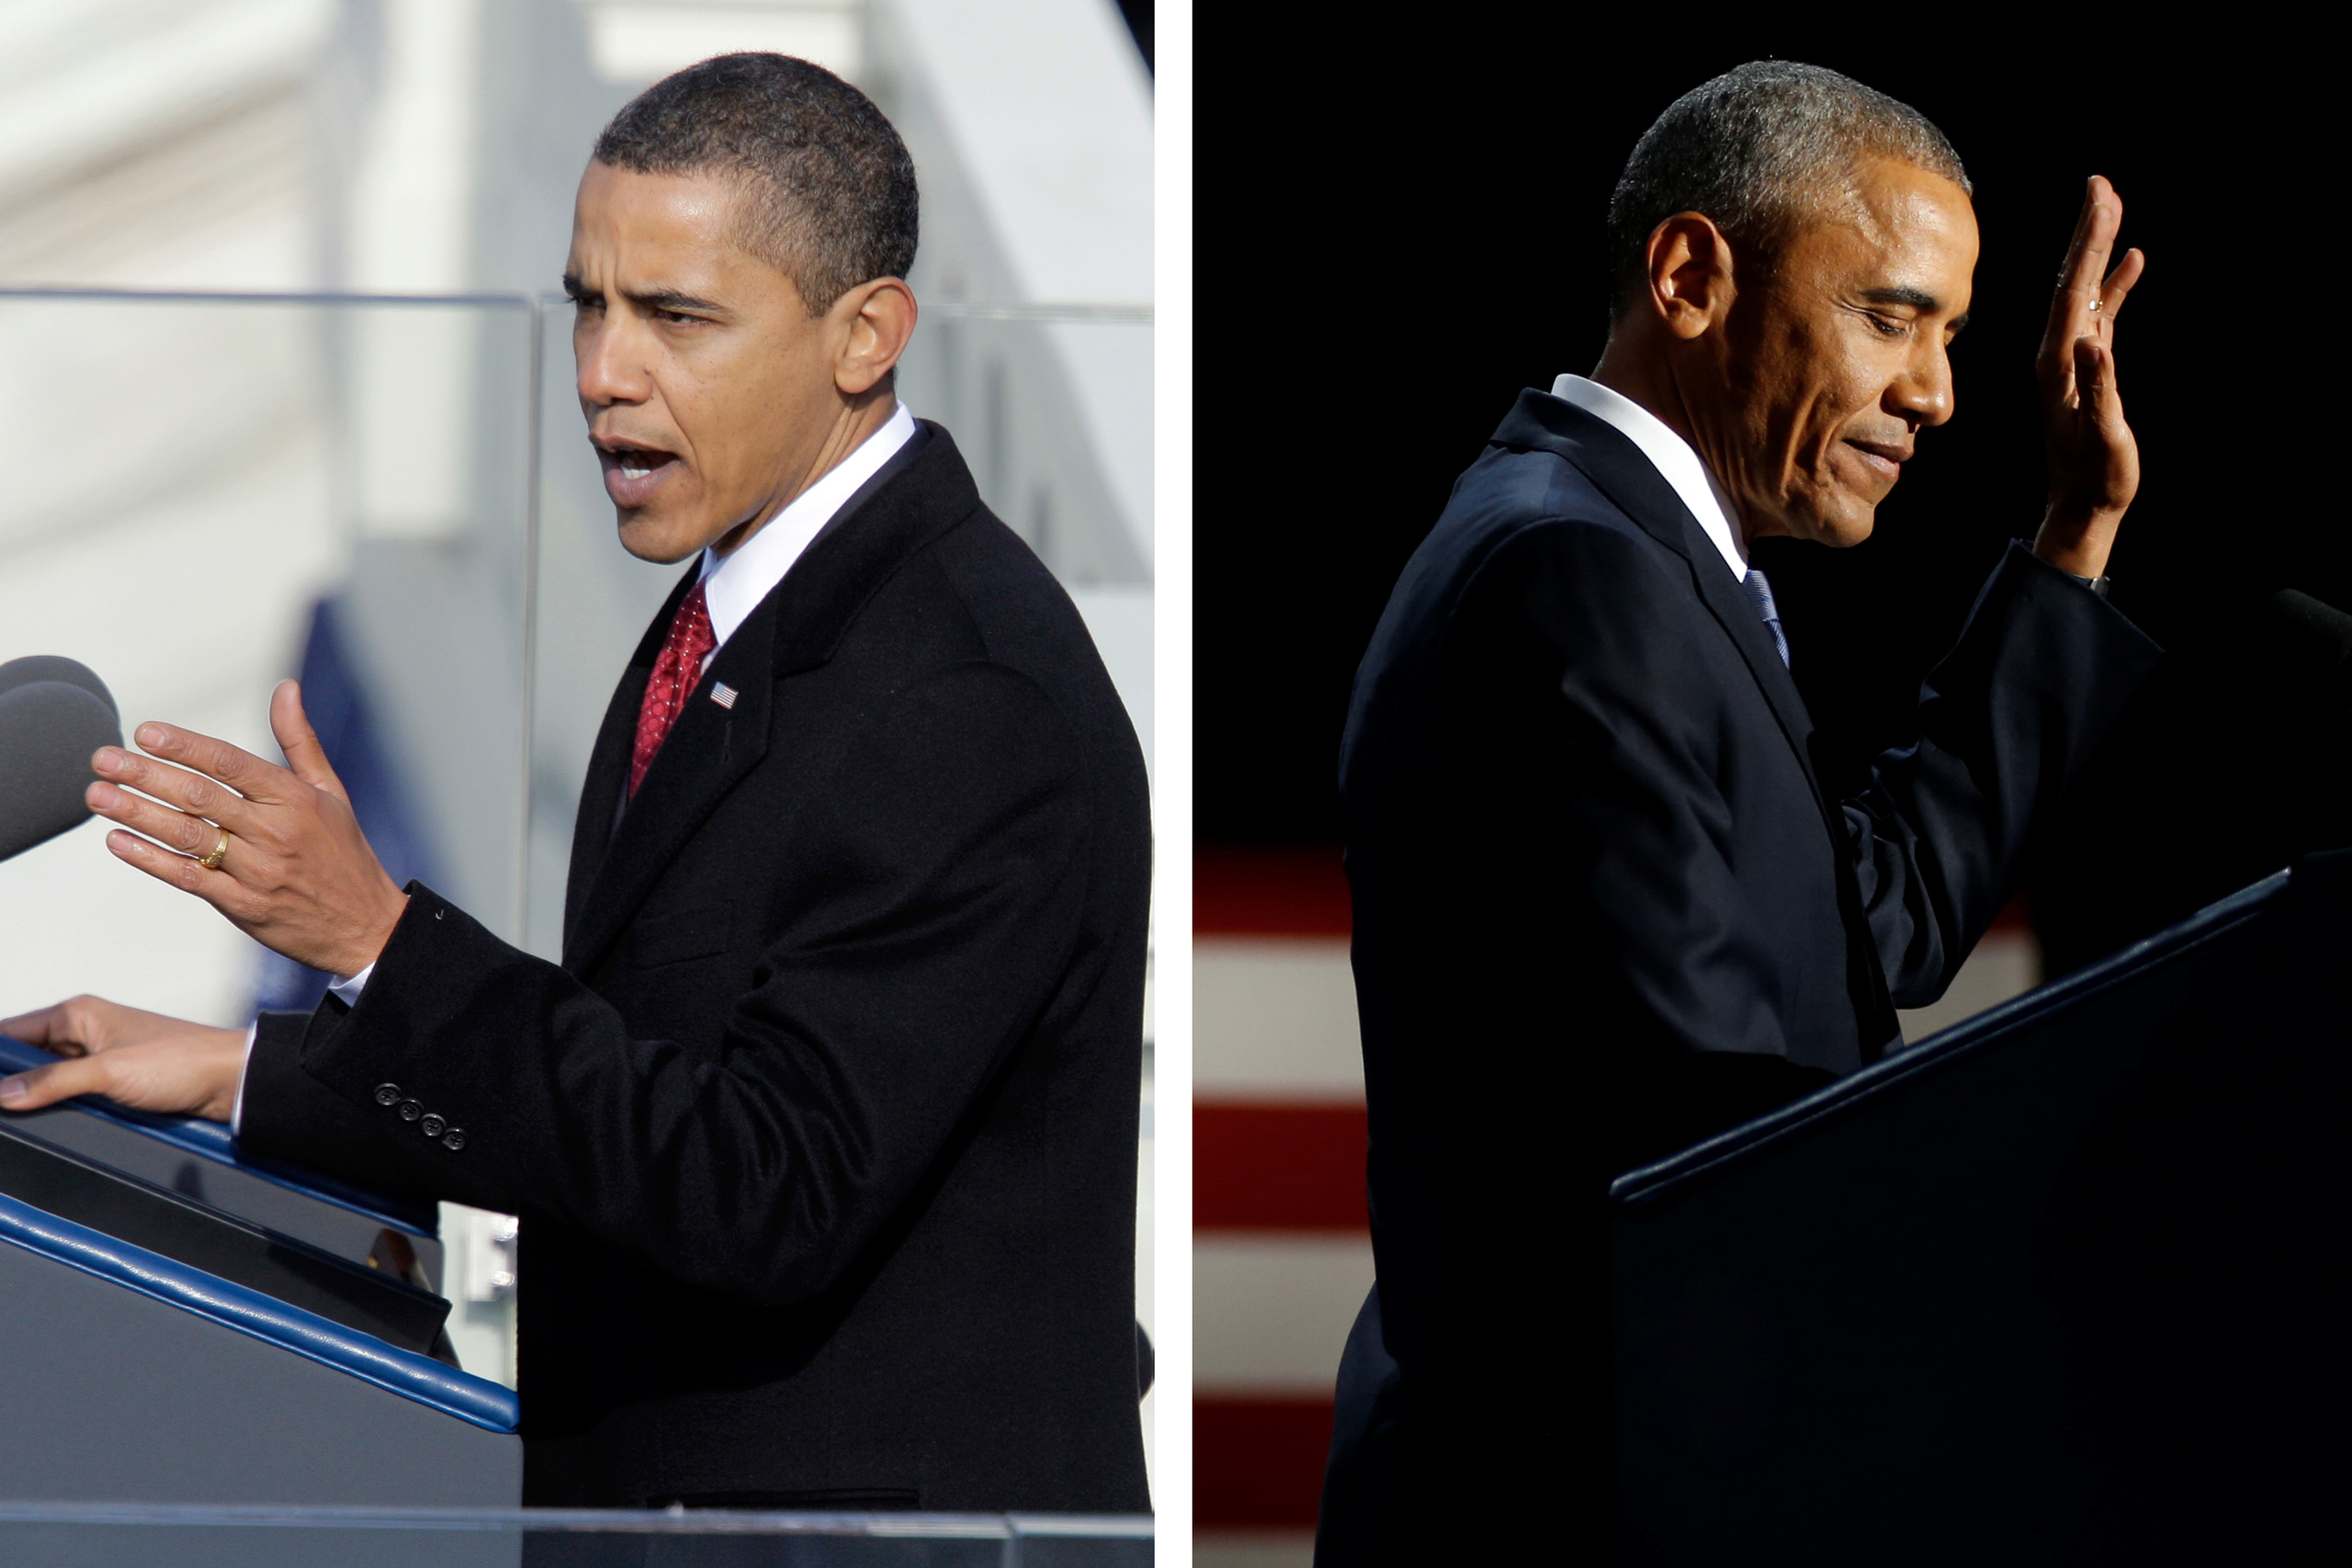 Left: President Barack Obama delivers his inaugural address at the U.S. Capitol in Washington on Jan. 20, 2009; Right: President Barack Obama delivers his farewell address in Chicago on Jan.10, 2017.